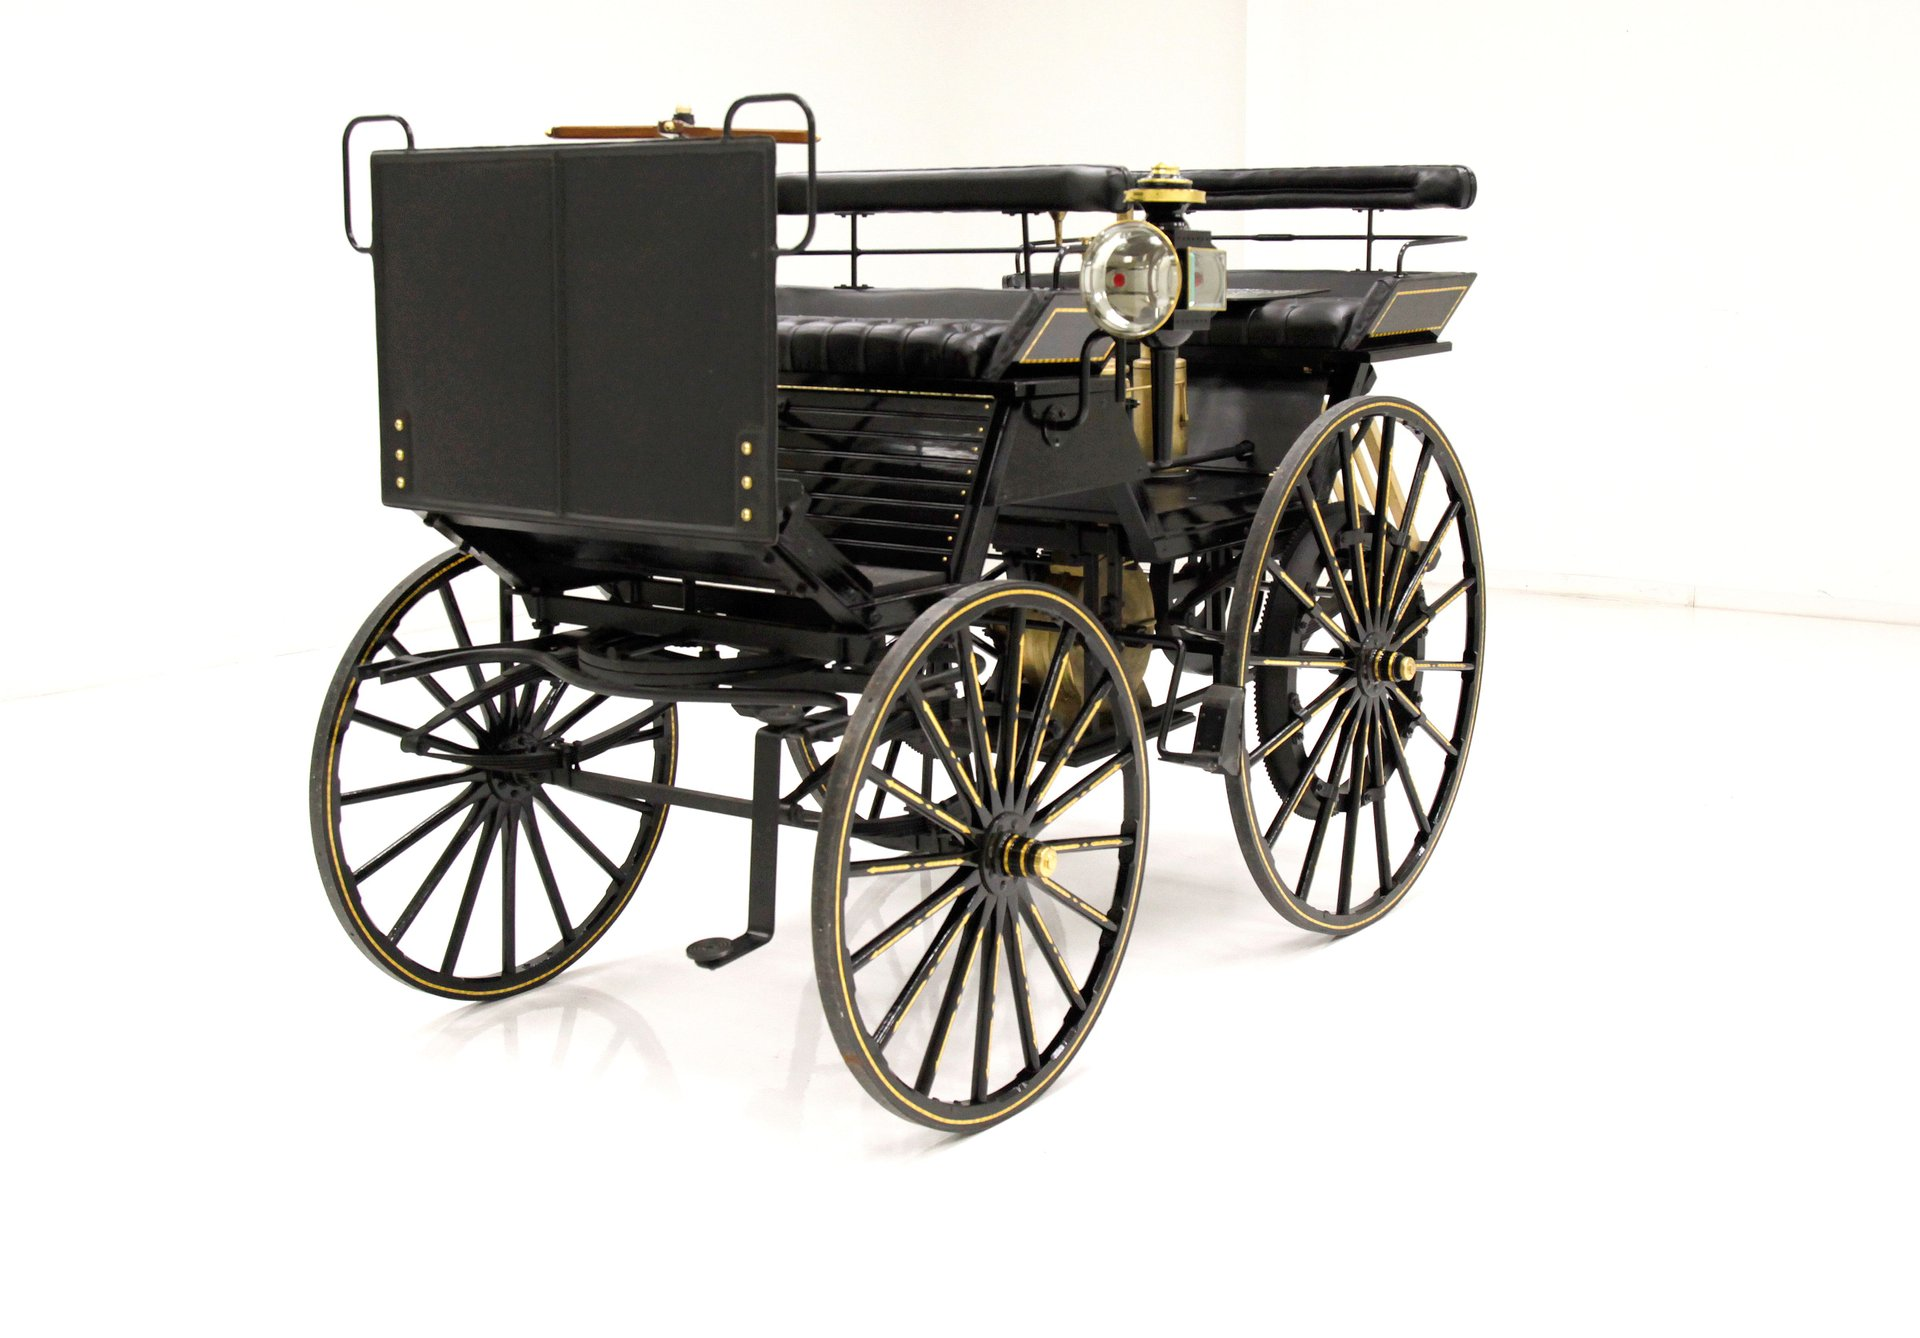 1890 Daimler Four Wheel Automobile Replica